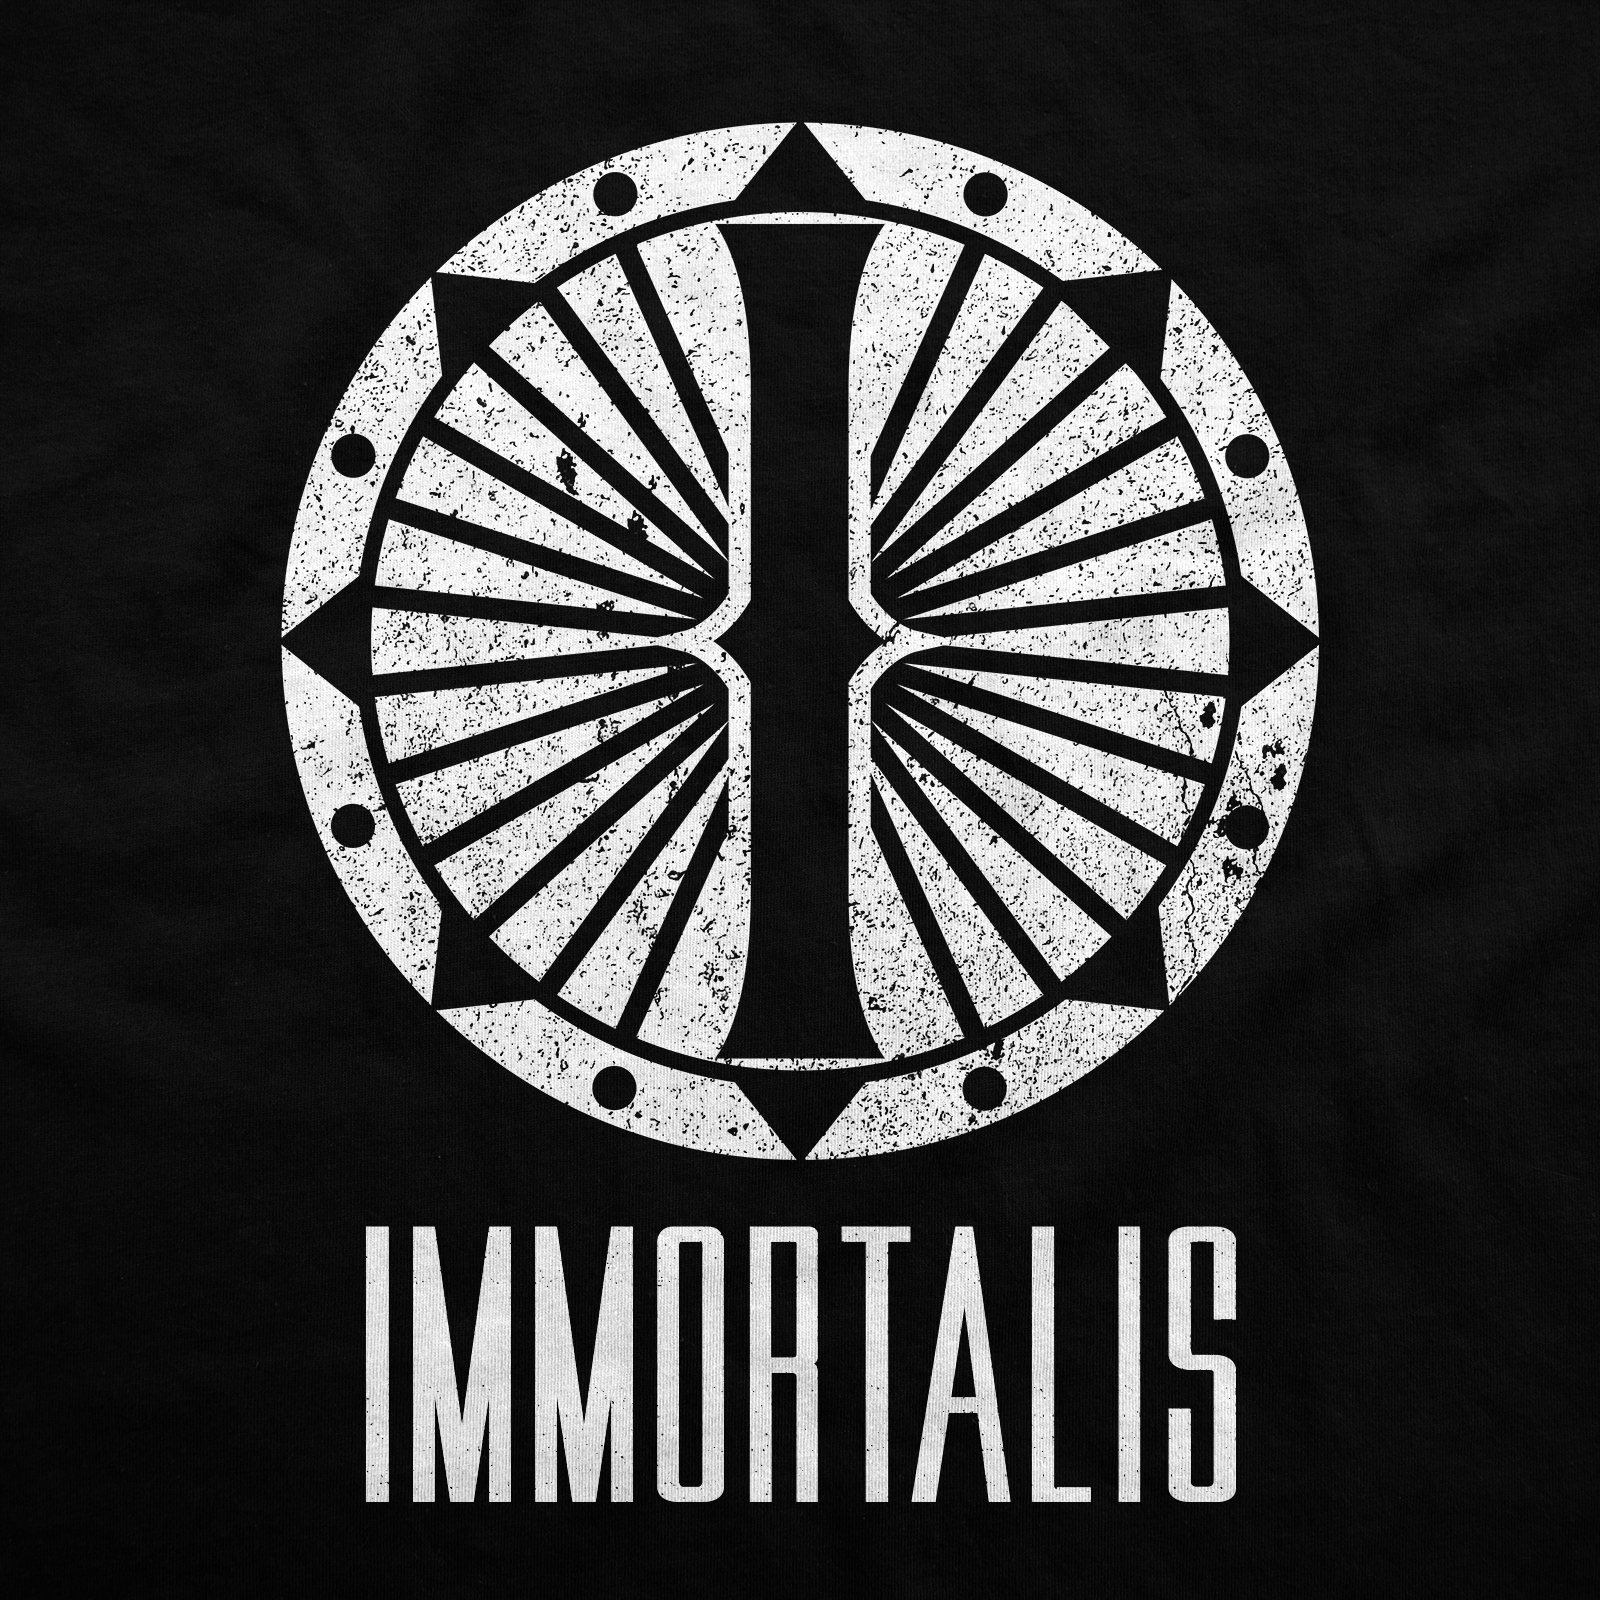 IMMORTALIS Merch Mockup 2 Closeup.jpg